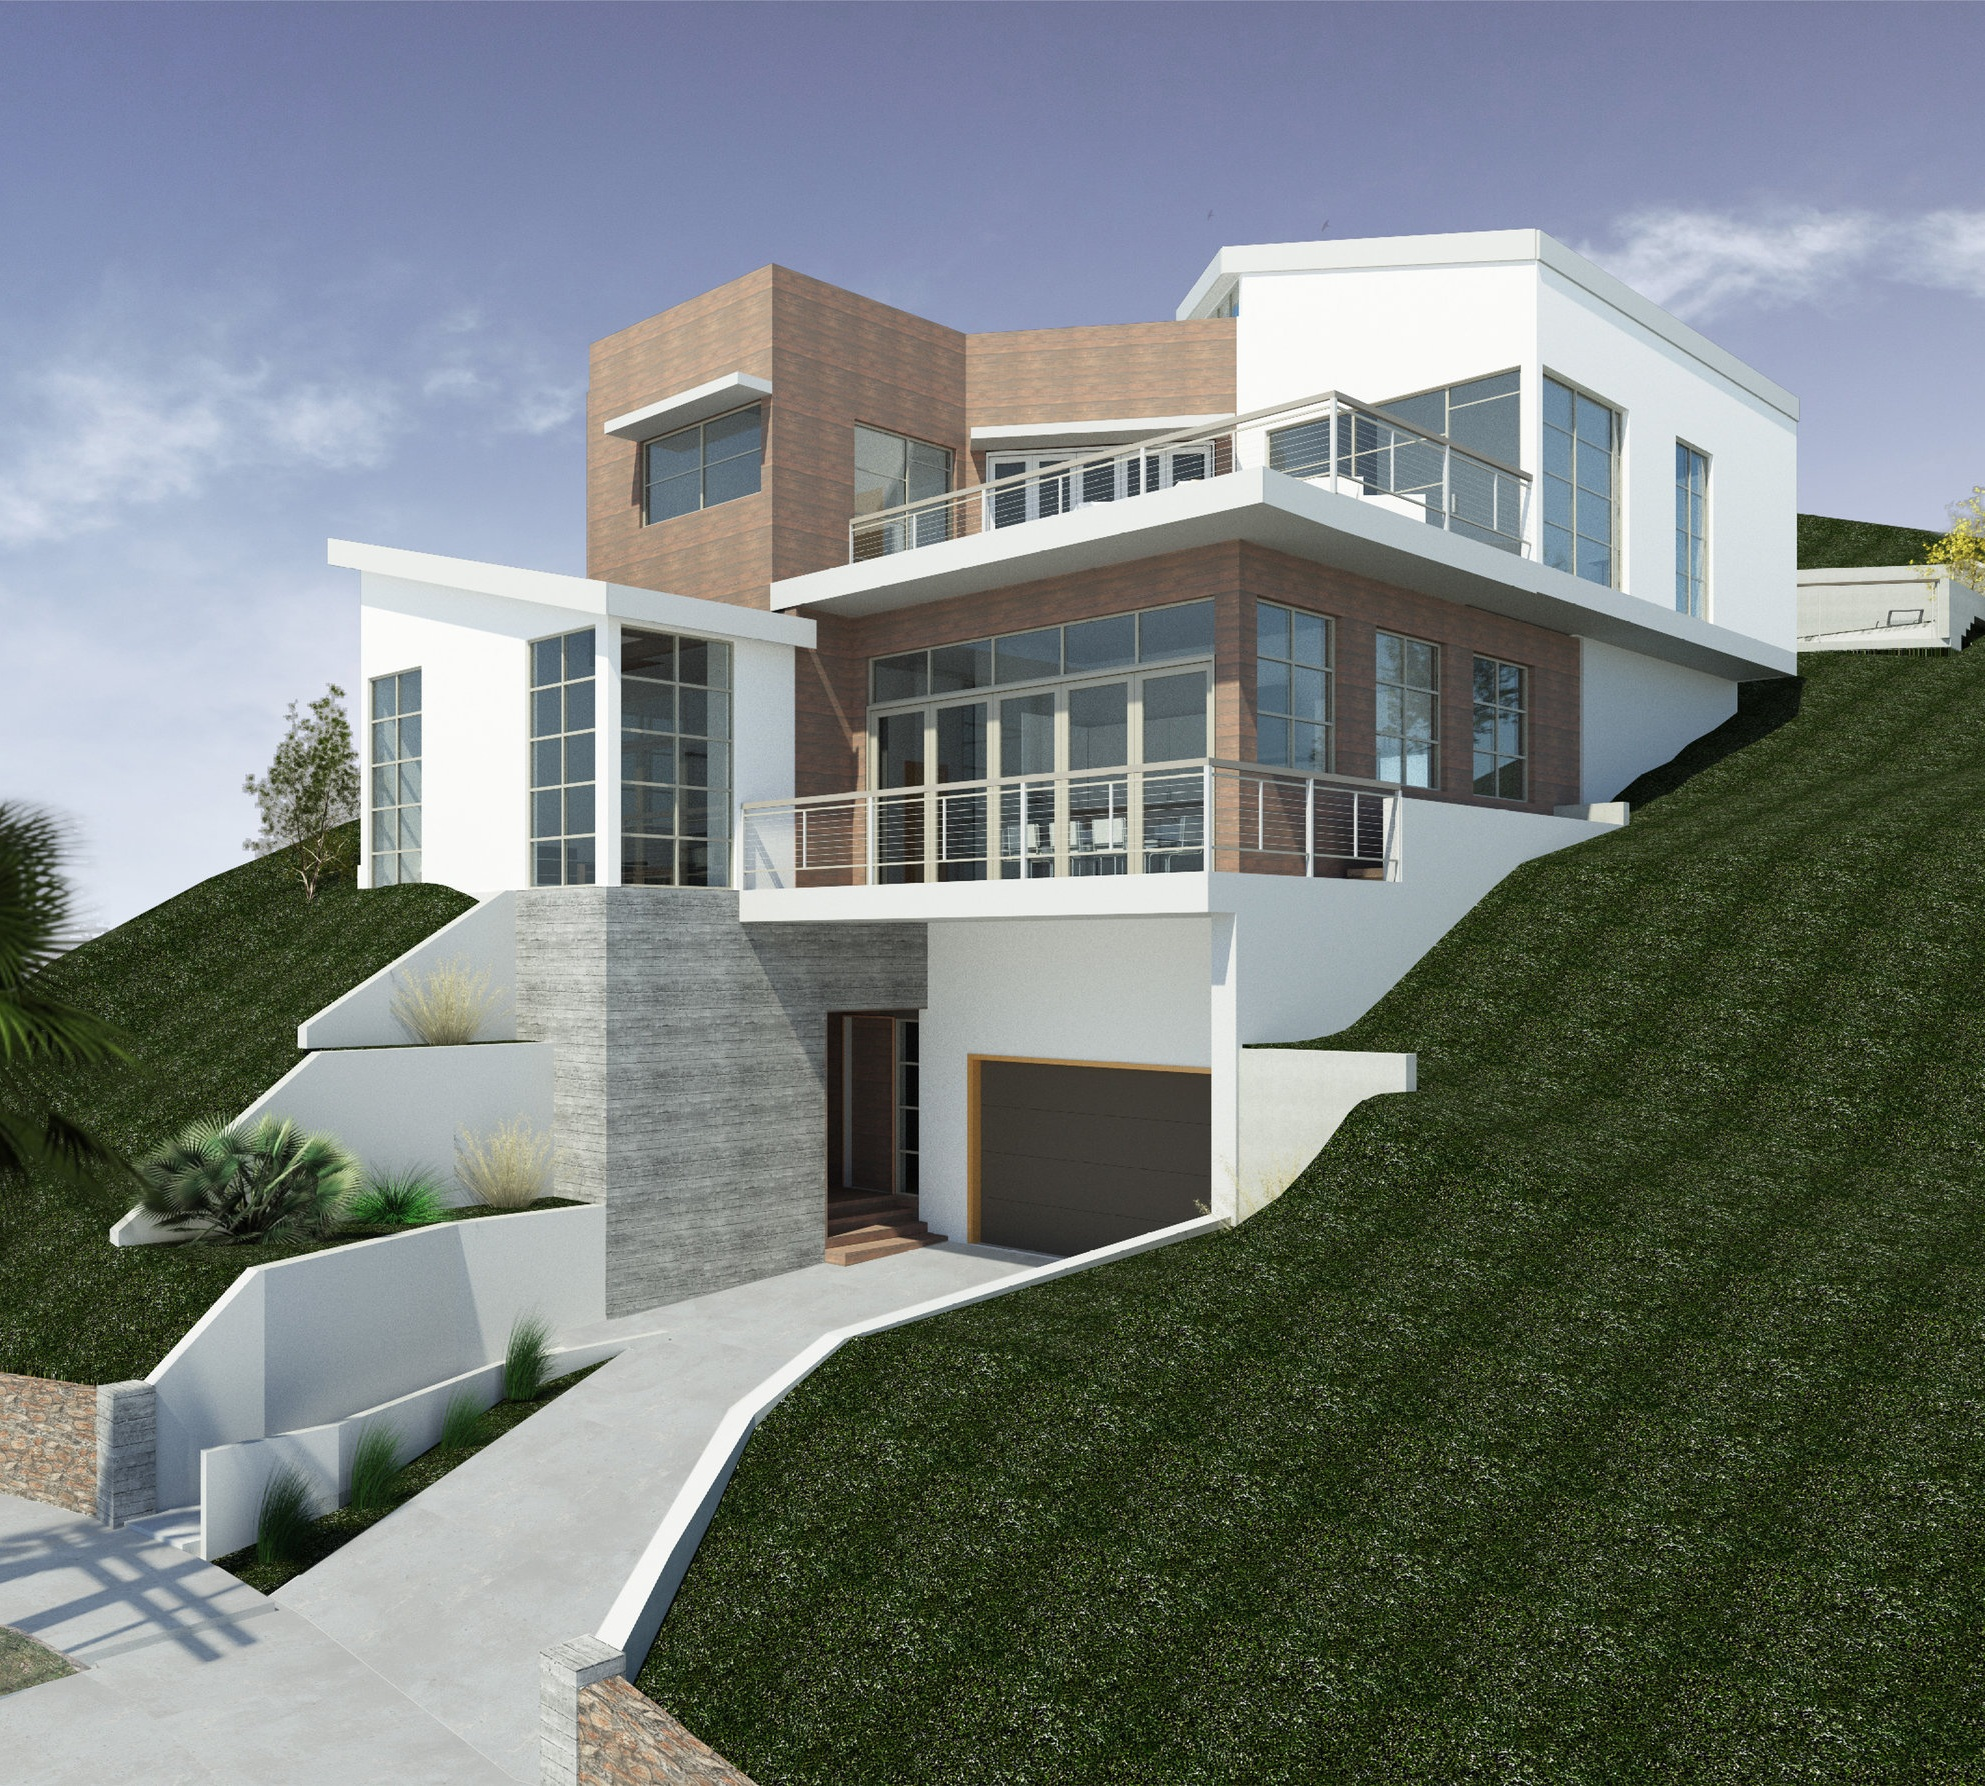 HOUSE+1+VIEW+TO+NORTHWEST+small.jpg